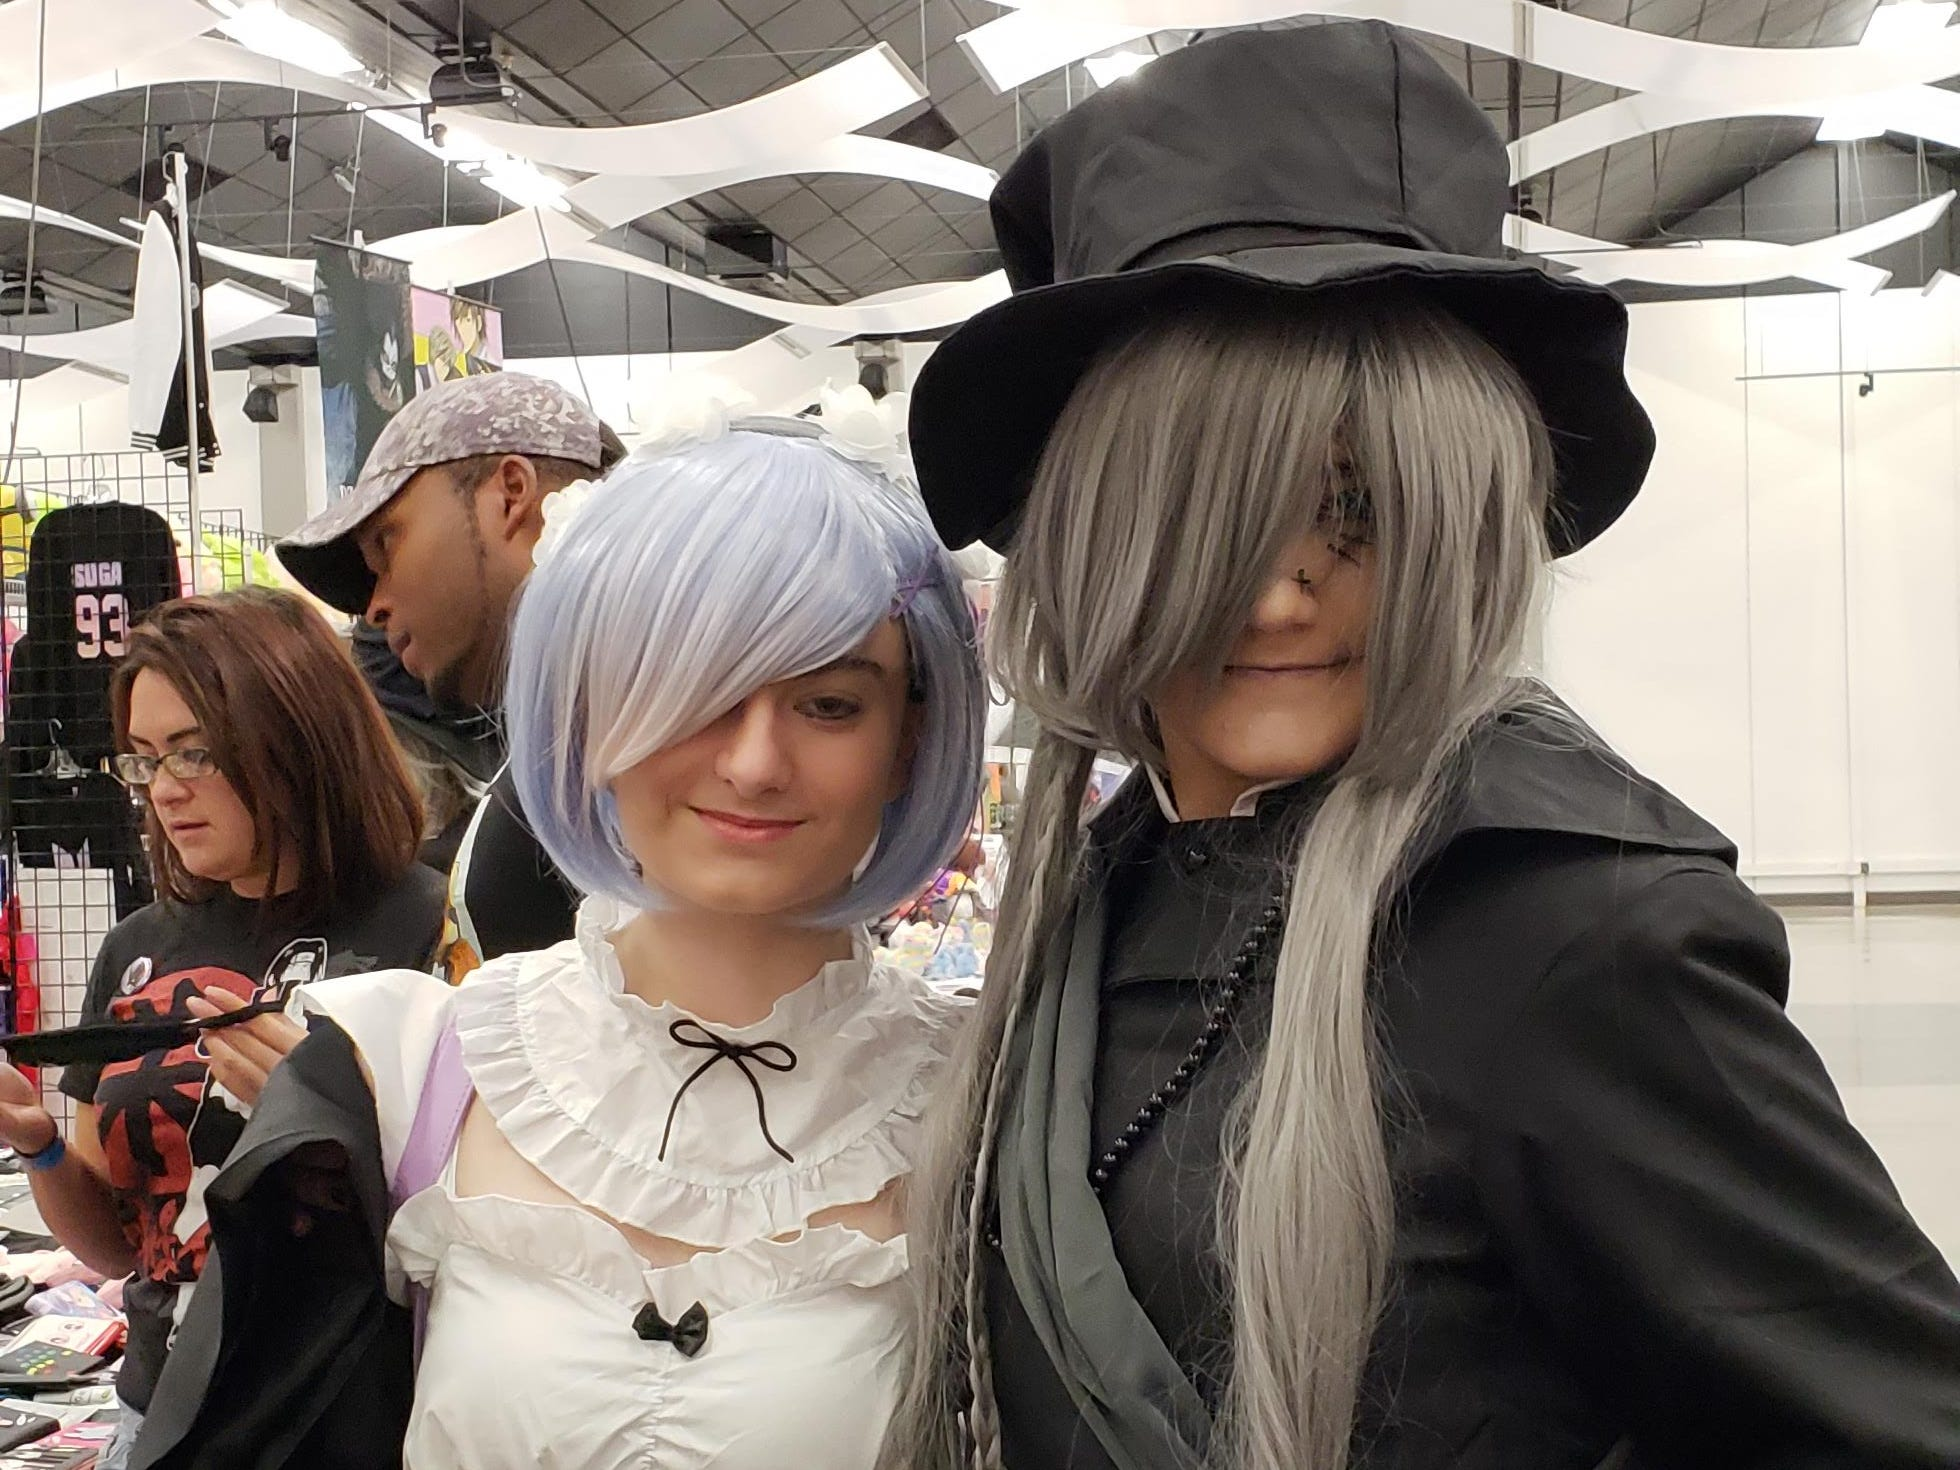 Brooke Janssen and Jessica Gorski, both students at Abilene Christian University, were among the many cosplayers who attended Anime Sekai at the Abilene Convention Center Saturday.